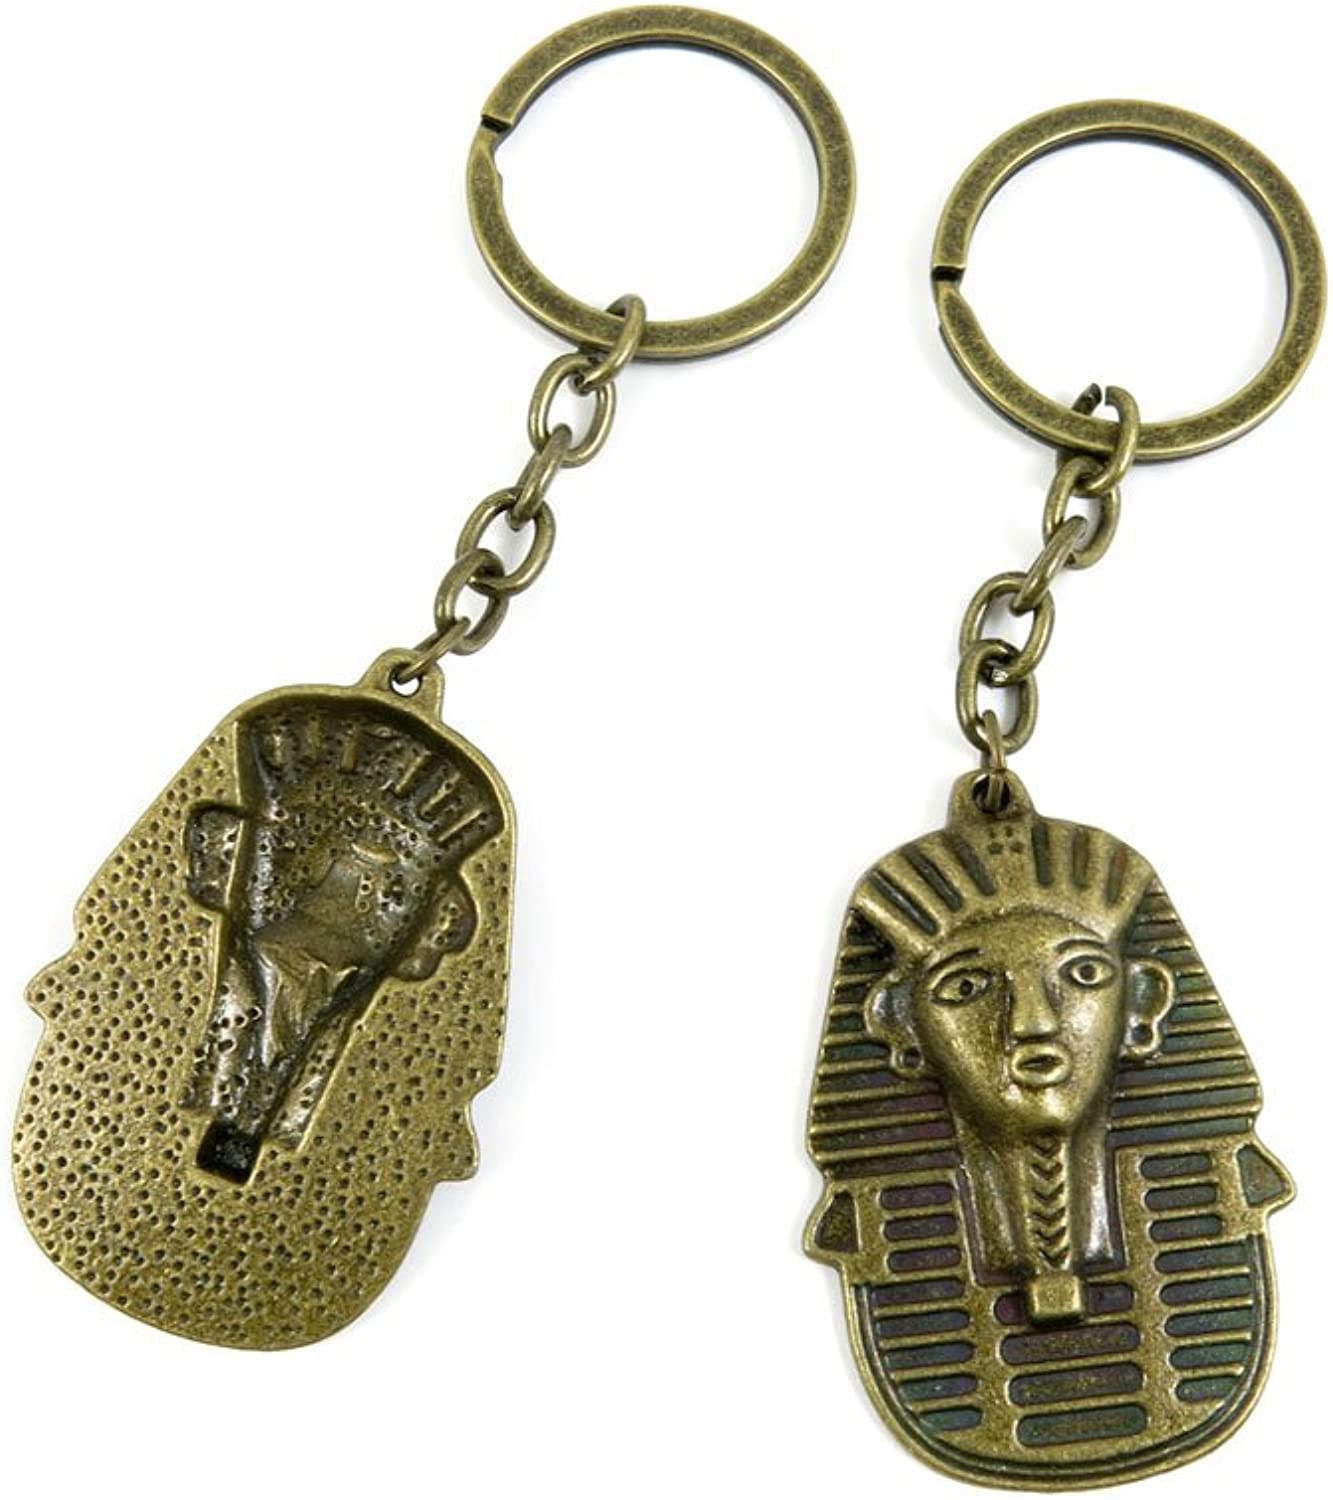 100 PCS Keyrings Keychains Key Ring Chains Tags Jewelry Findings Clasps Buckles Supplies I4WL8 Egypt King